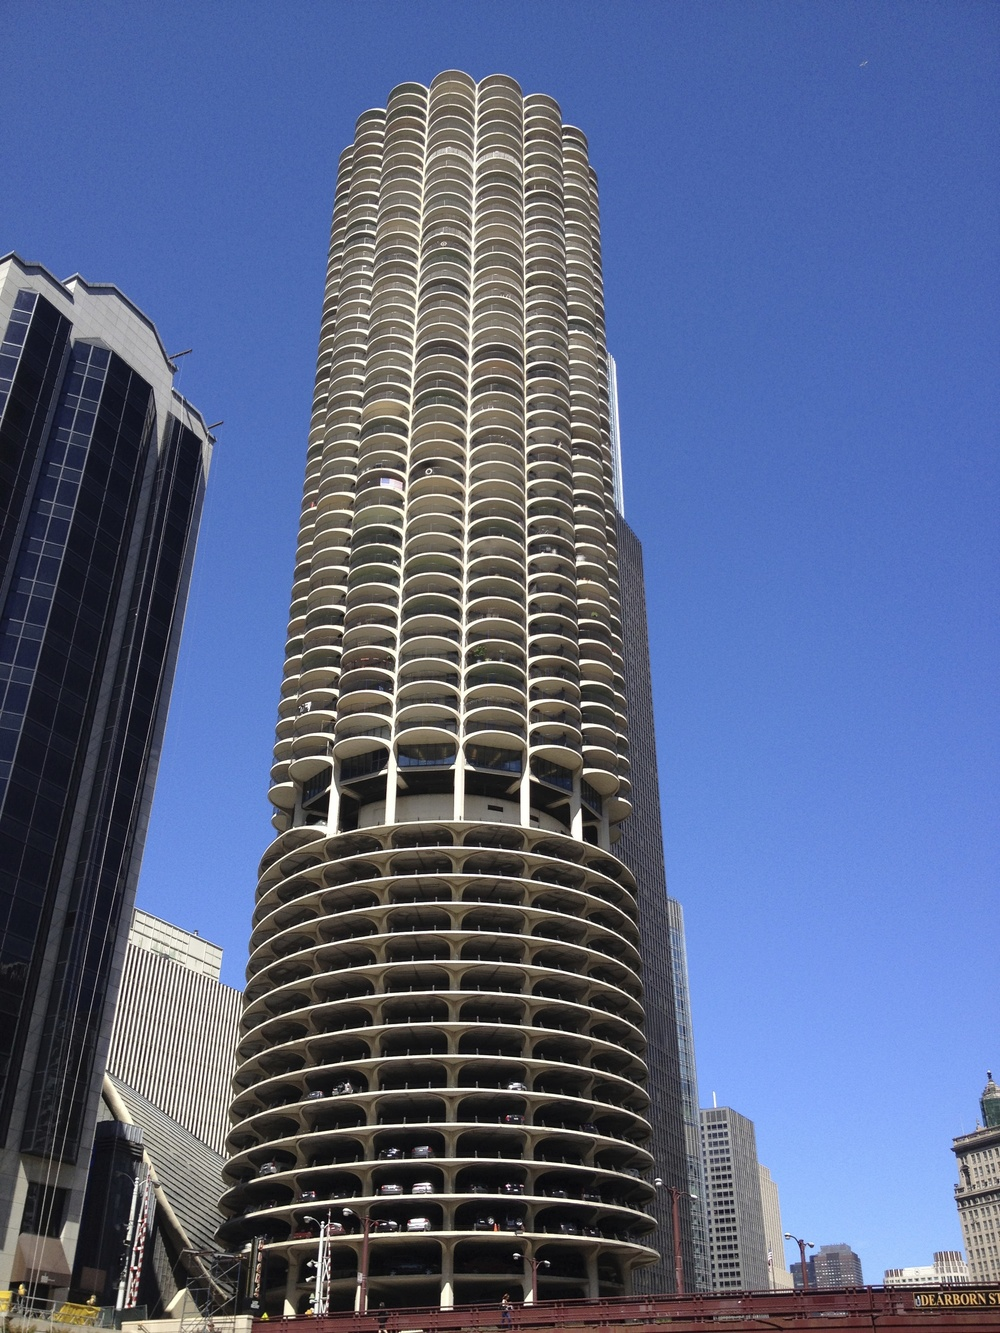 Marina City was completed in 1964.  Its corncob-like facade is a unique design that stands out immediately in the skyline.  At 65 floors the twin towers were the tallest residential buildings in the world when they were built. Note the bottom floors is actually a parking garage if you look closely you can see the cars.